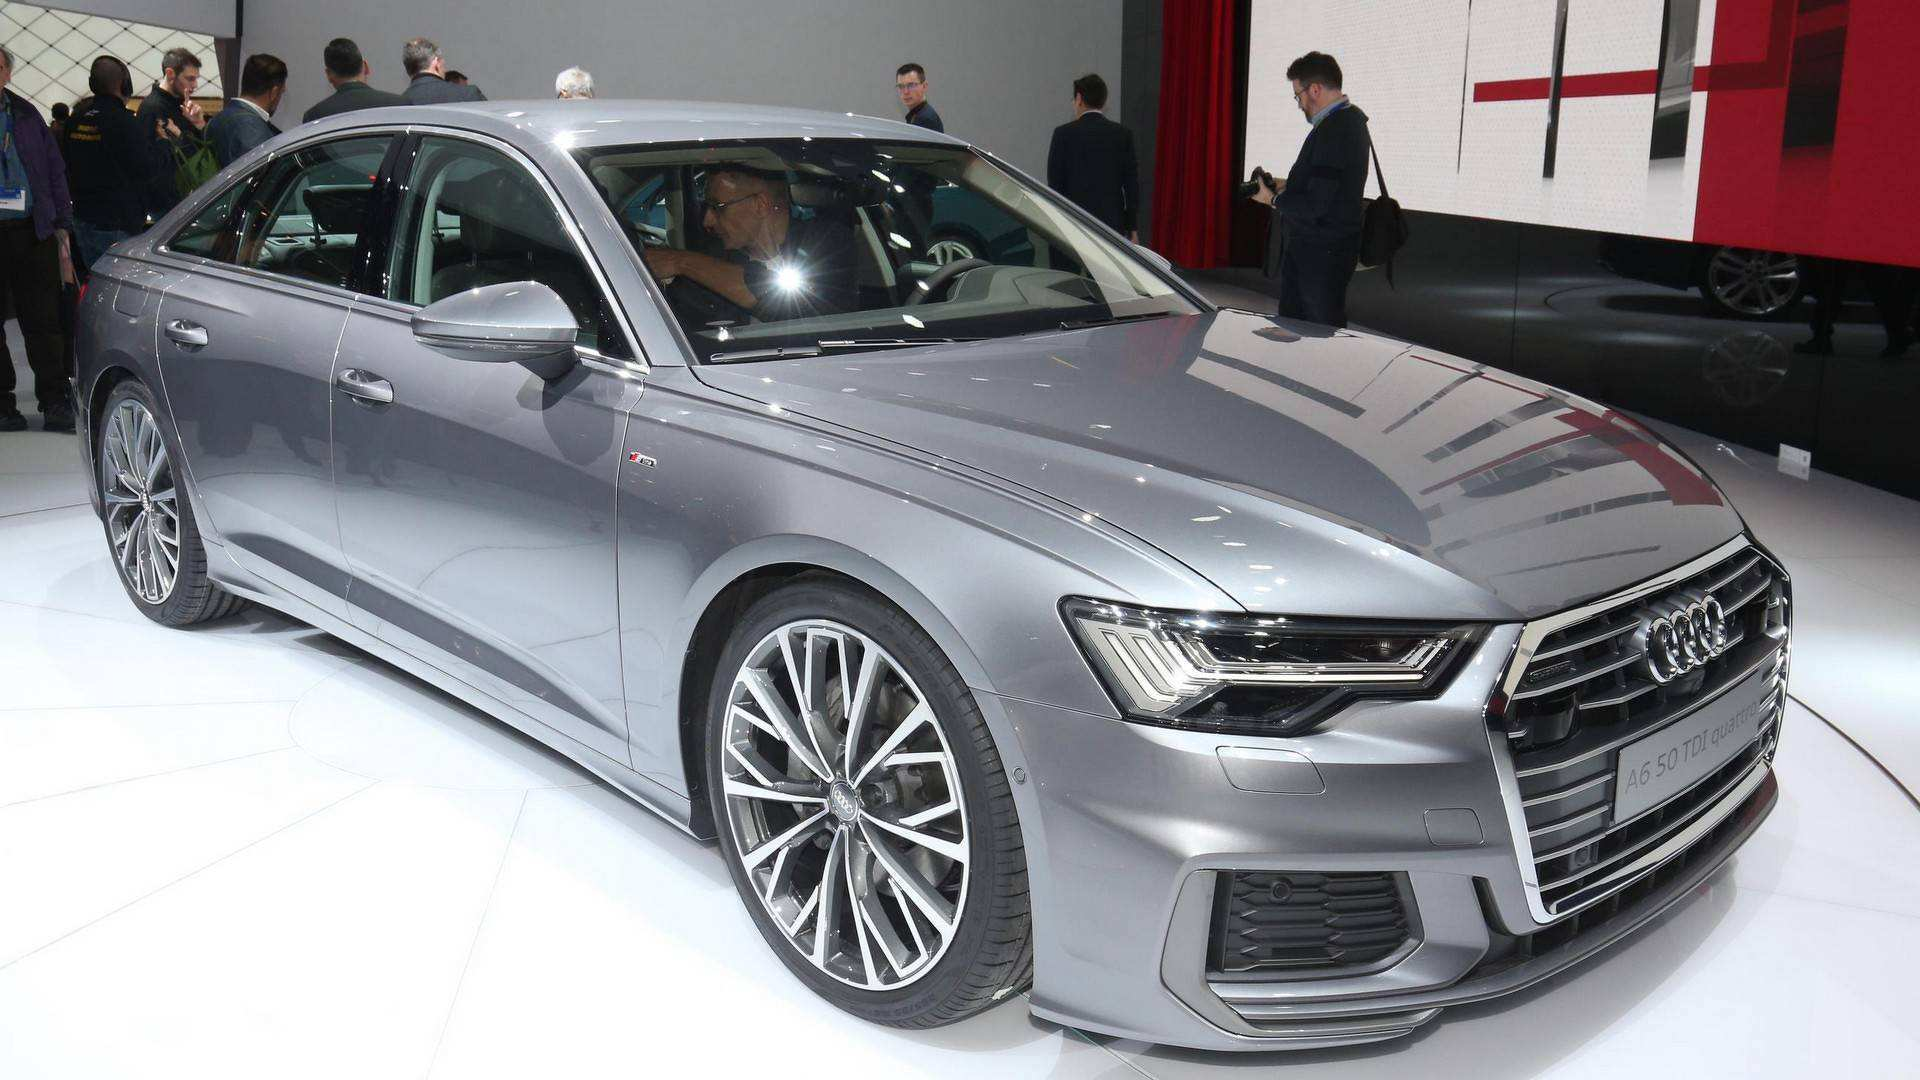 22 Gallery of New Audi A6 S Line 2019 Picture Release Date And Review Engine for New Audi A6 S Line 2019 Picture Release Date And Review